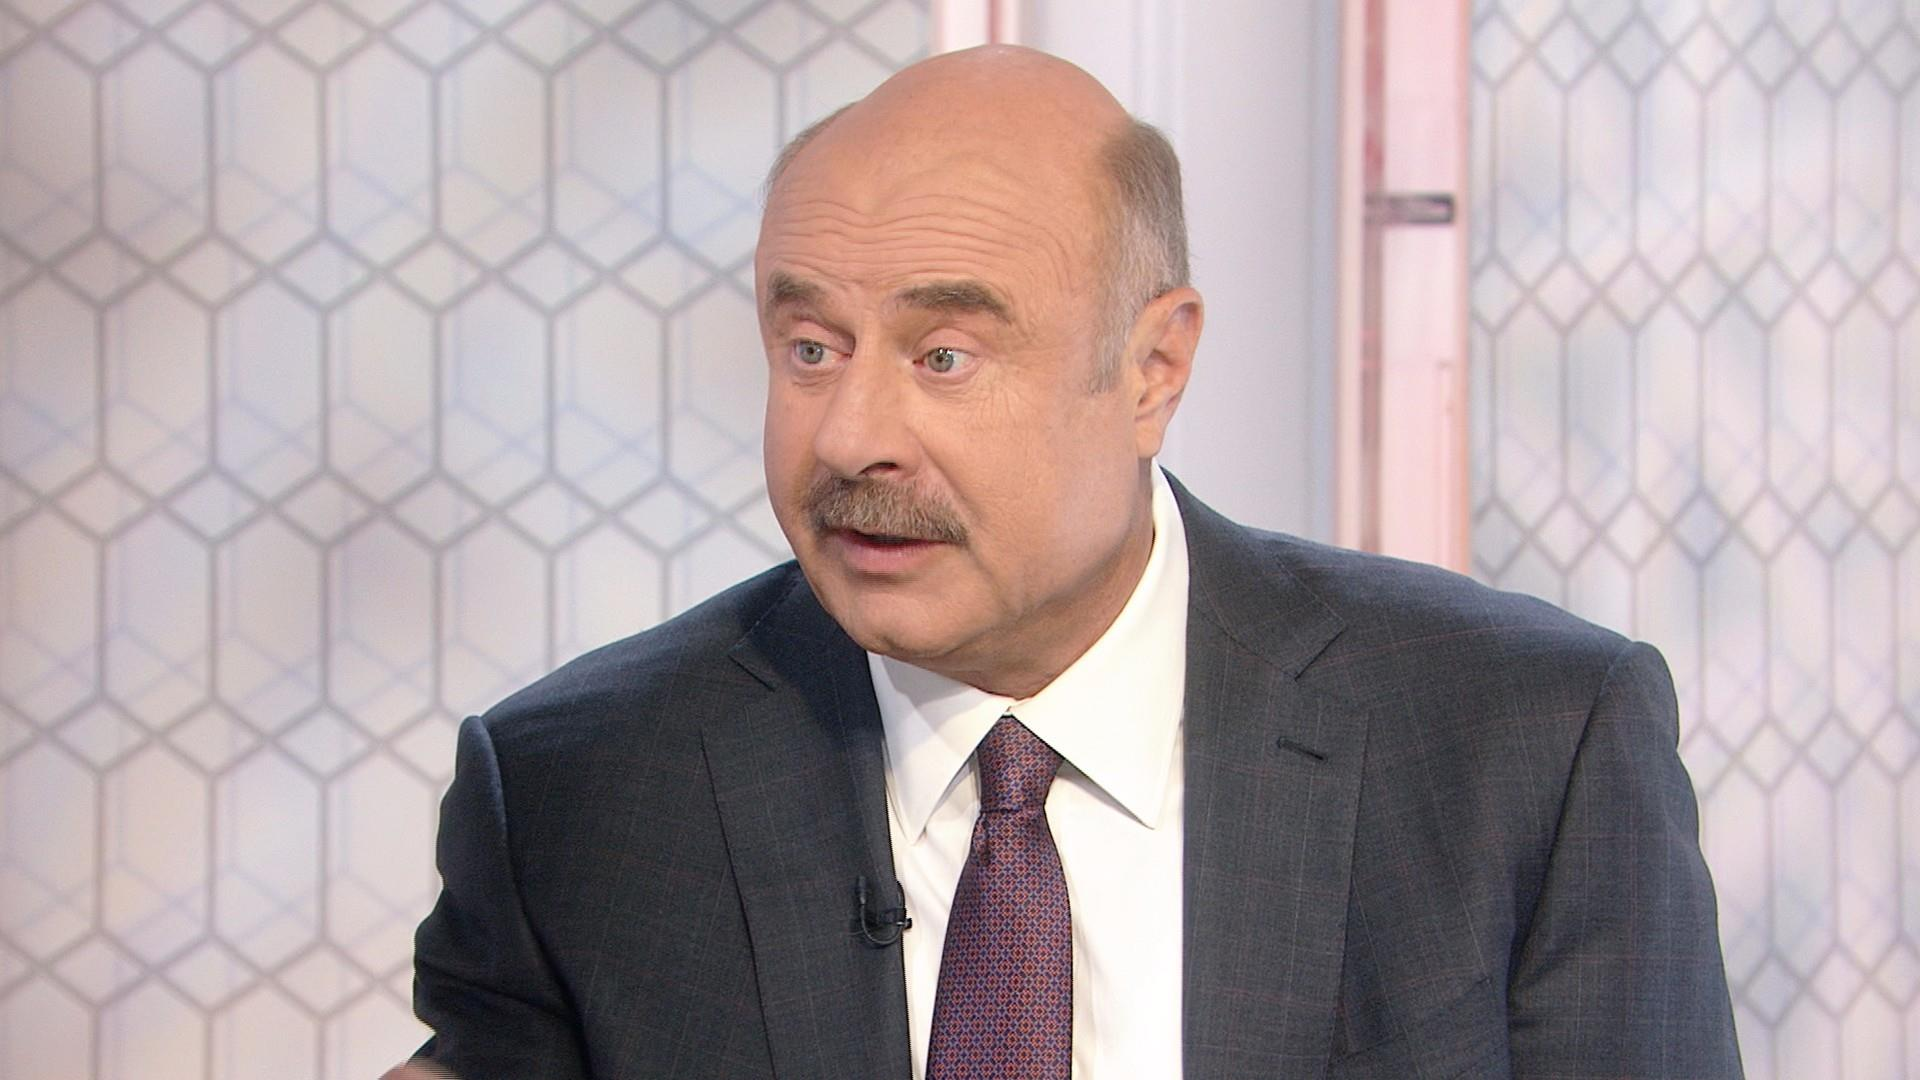 Dr Phil High Resolution